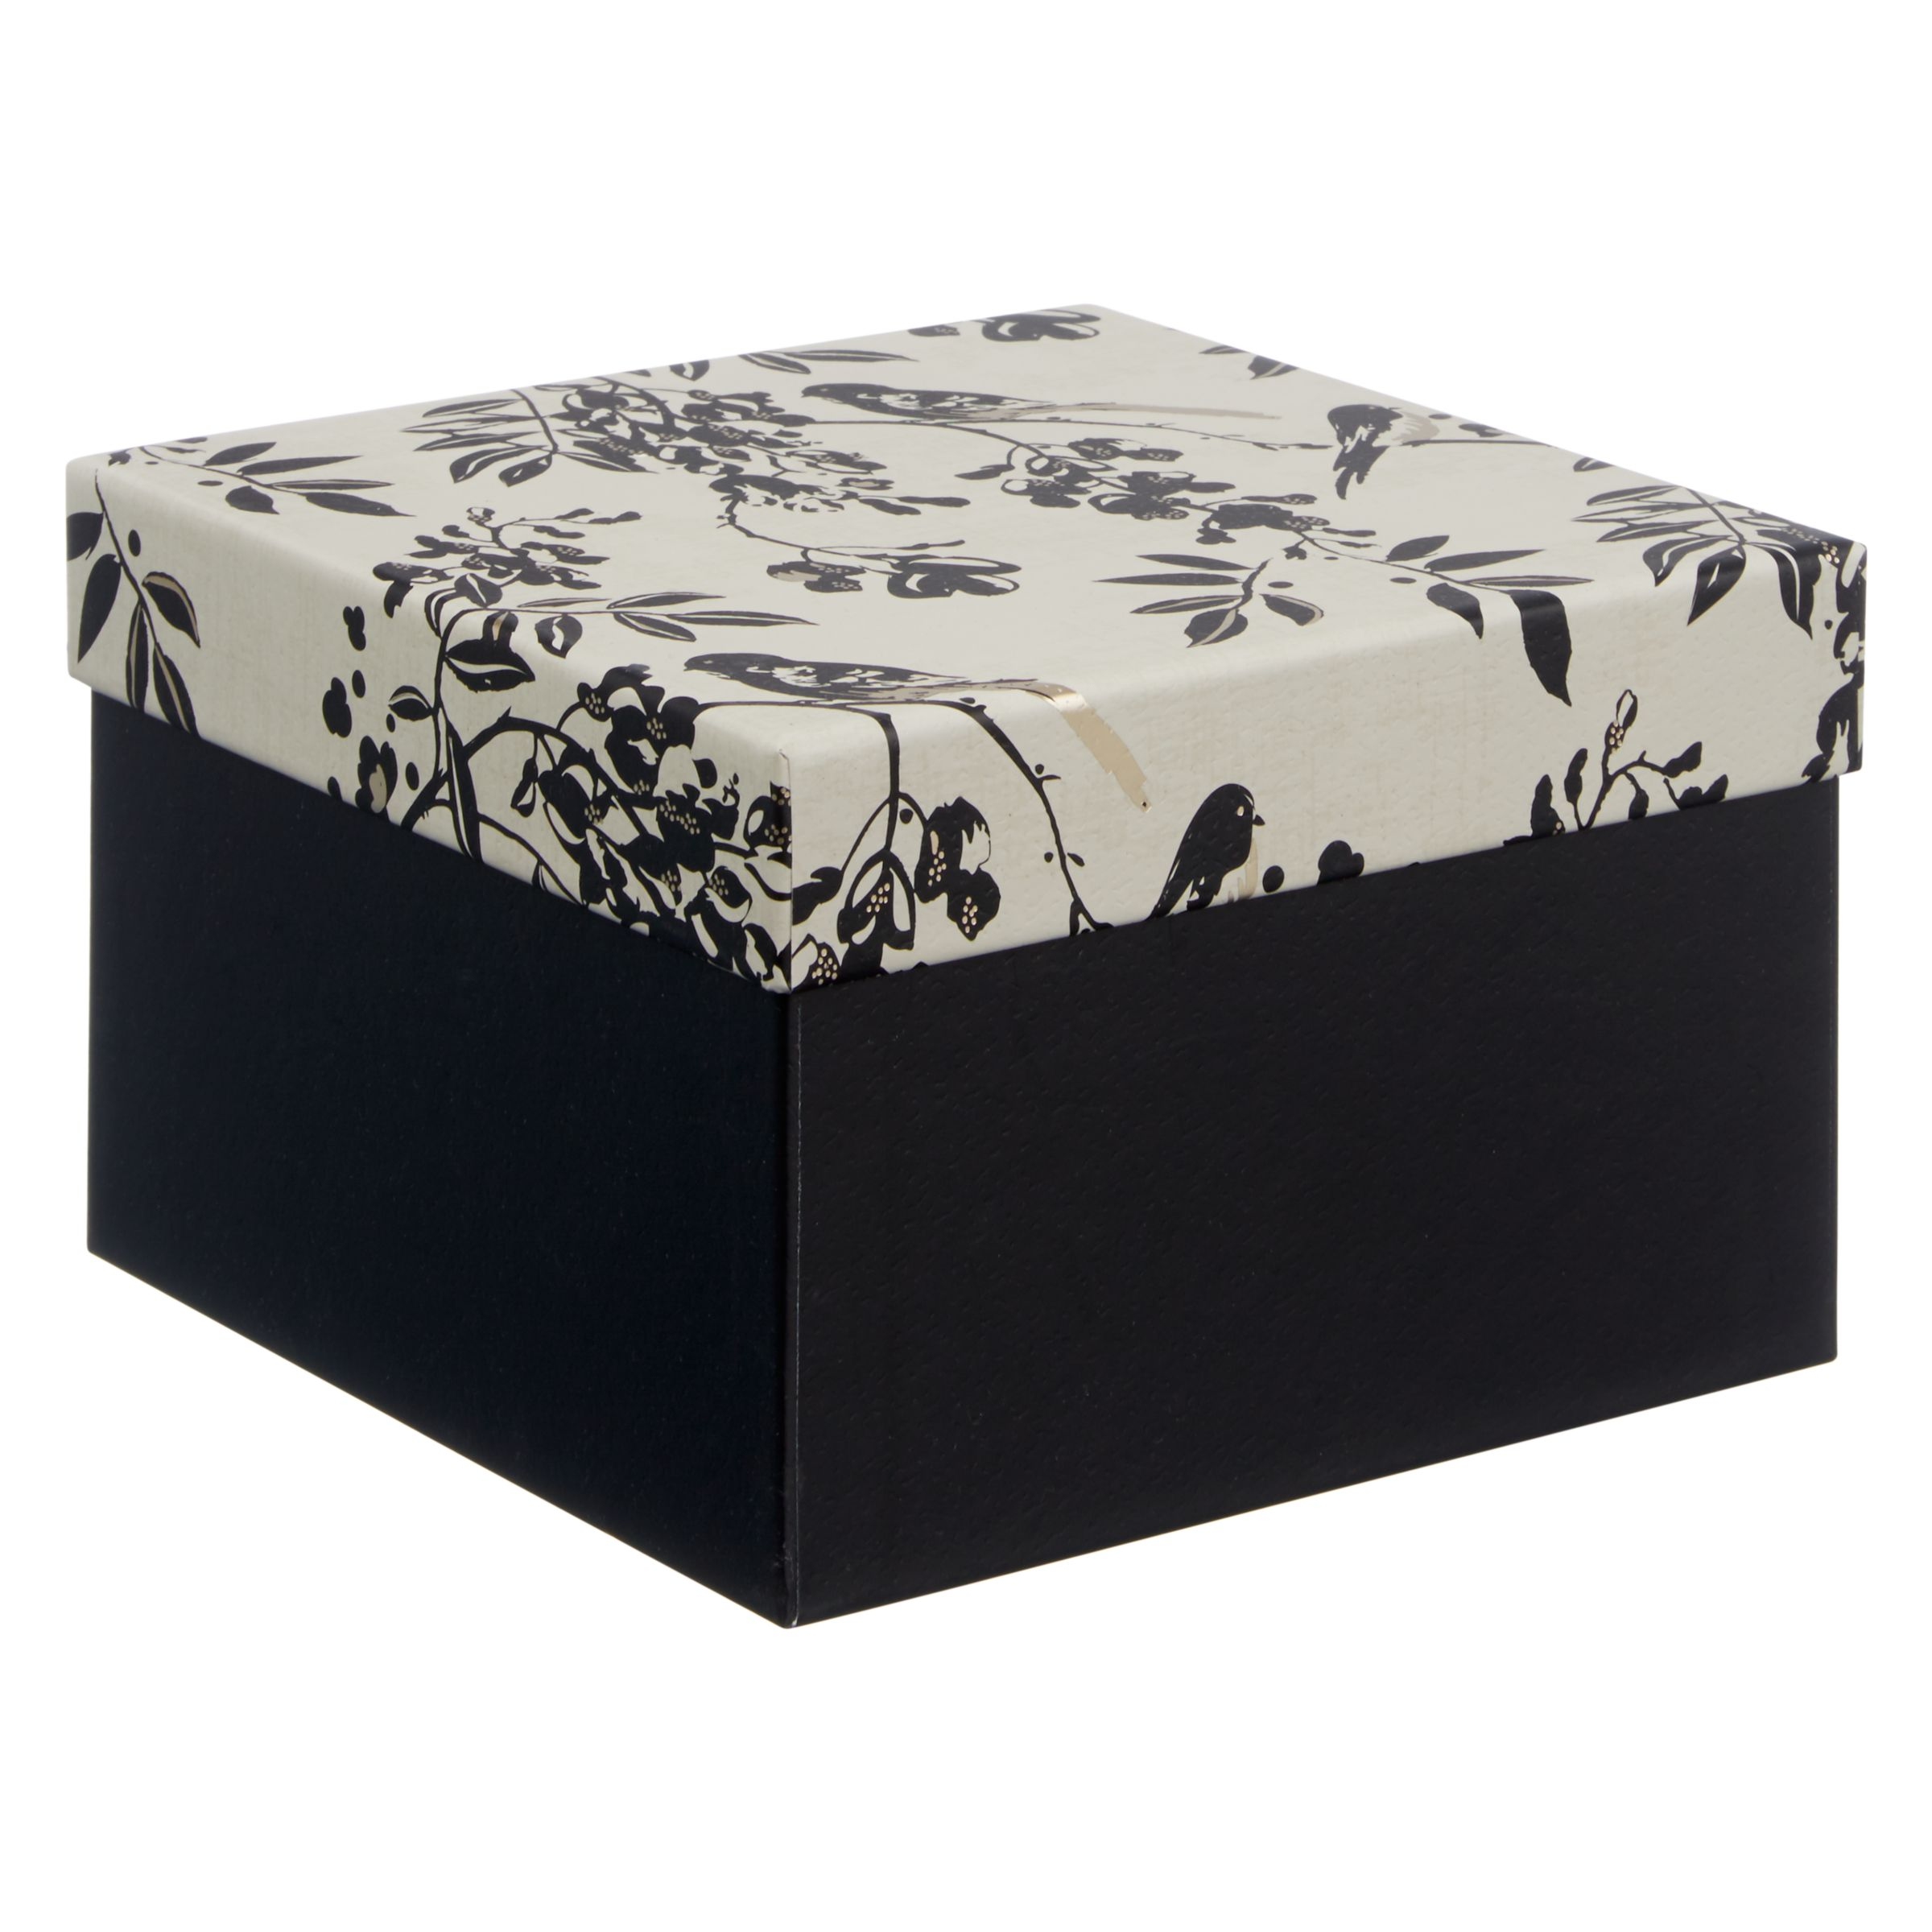 Wedding Gift List Wording John Lewis : Buy John Lewis Wedding Gift Box, Small, Black John Lewis